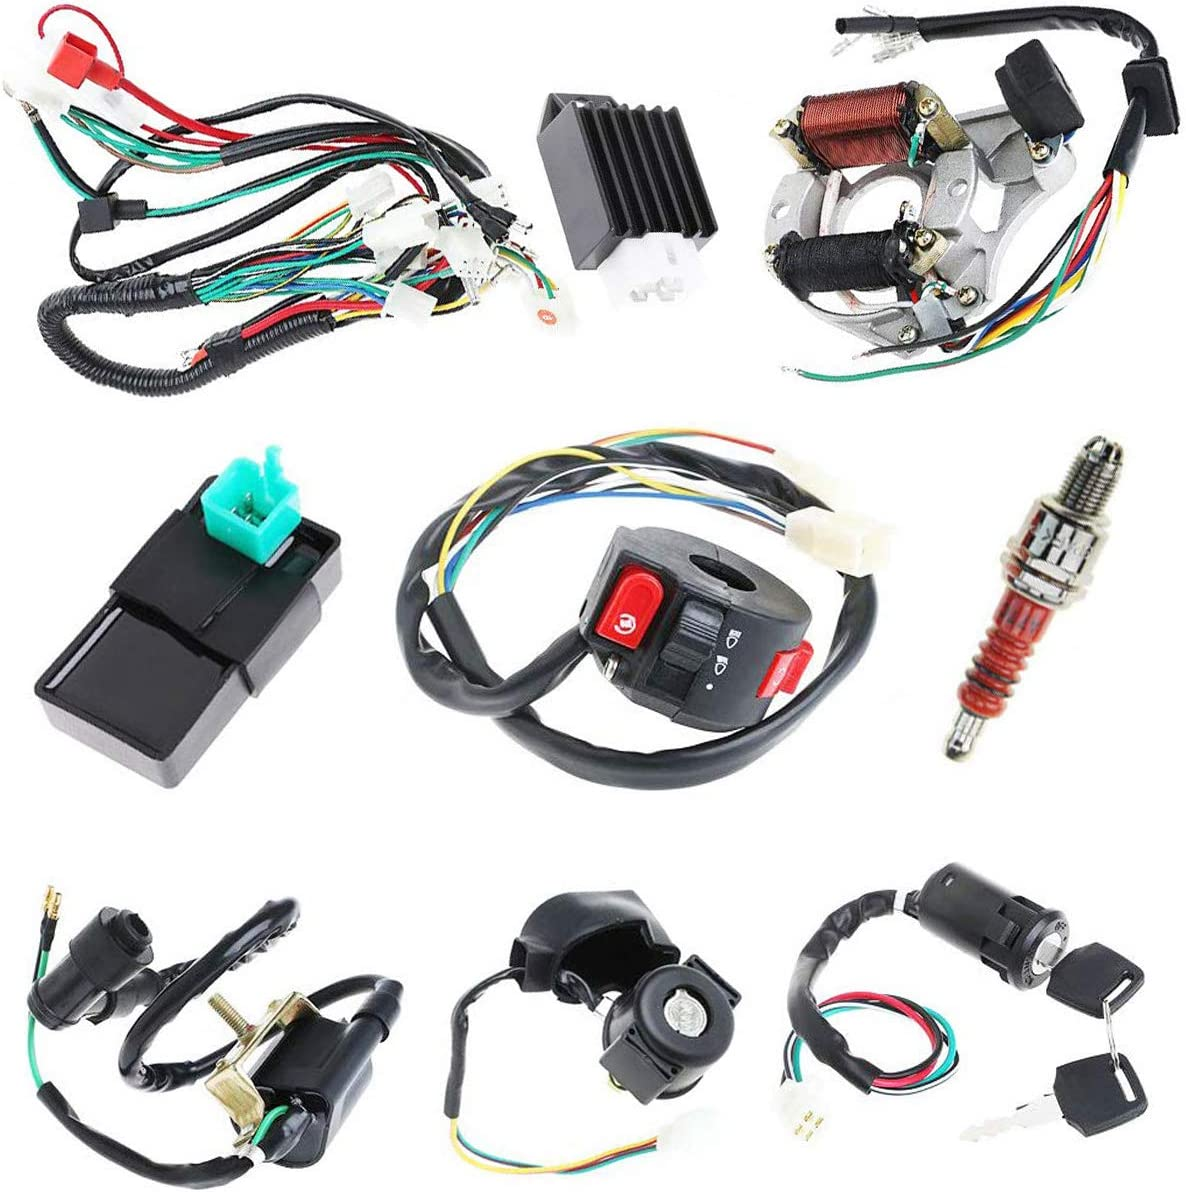 Amazon.com: Complete Electrics Stator Coil CDI Wiring Harness for 4 Stroke  ATV KLX 50cc 70cc 110cc 125cc-atv wiring harness: AutomotiveAmazon.com